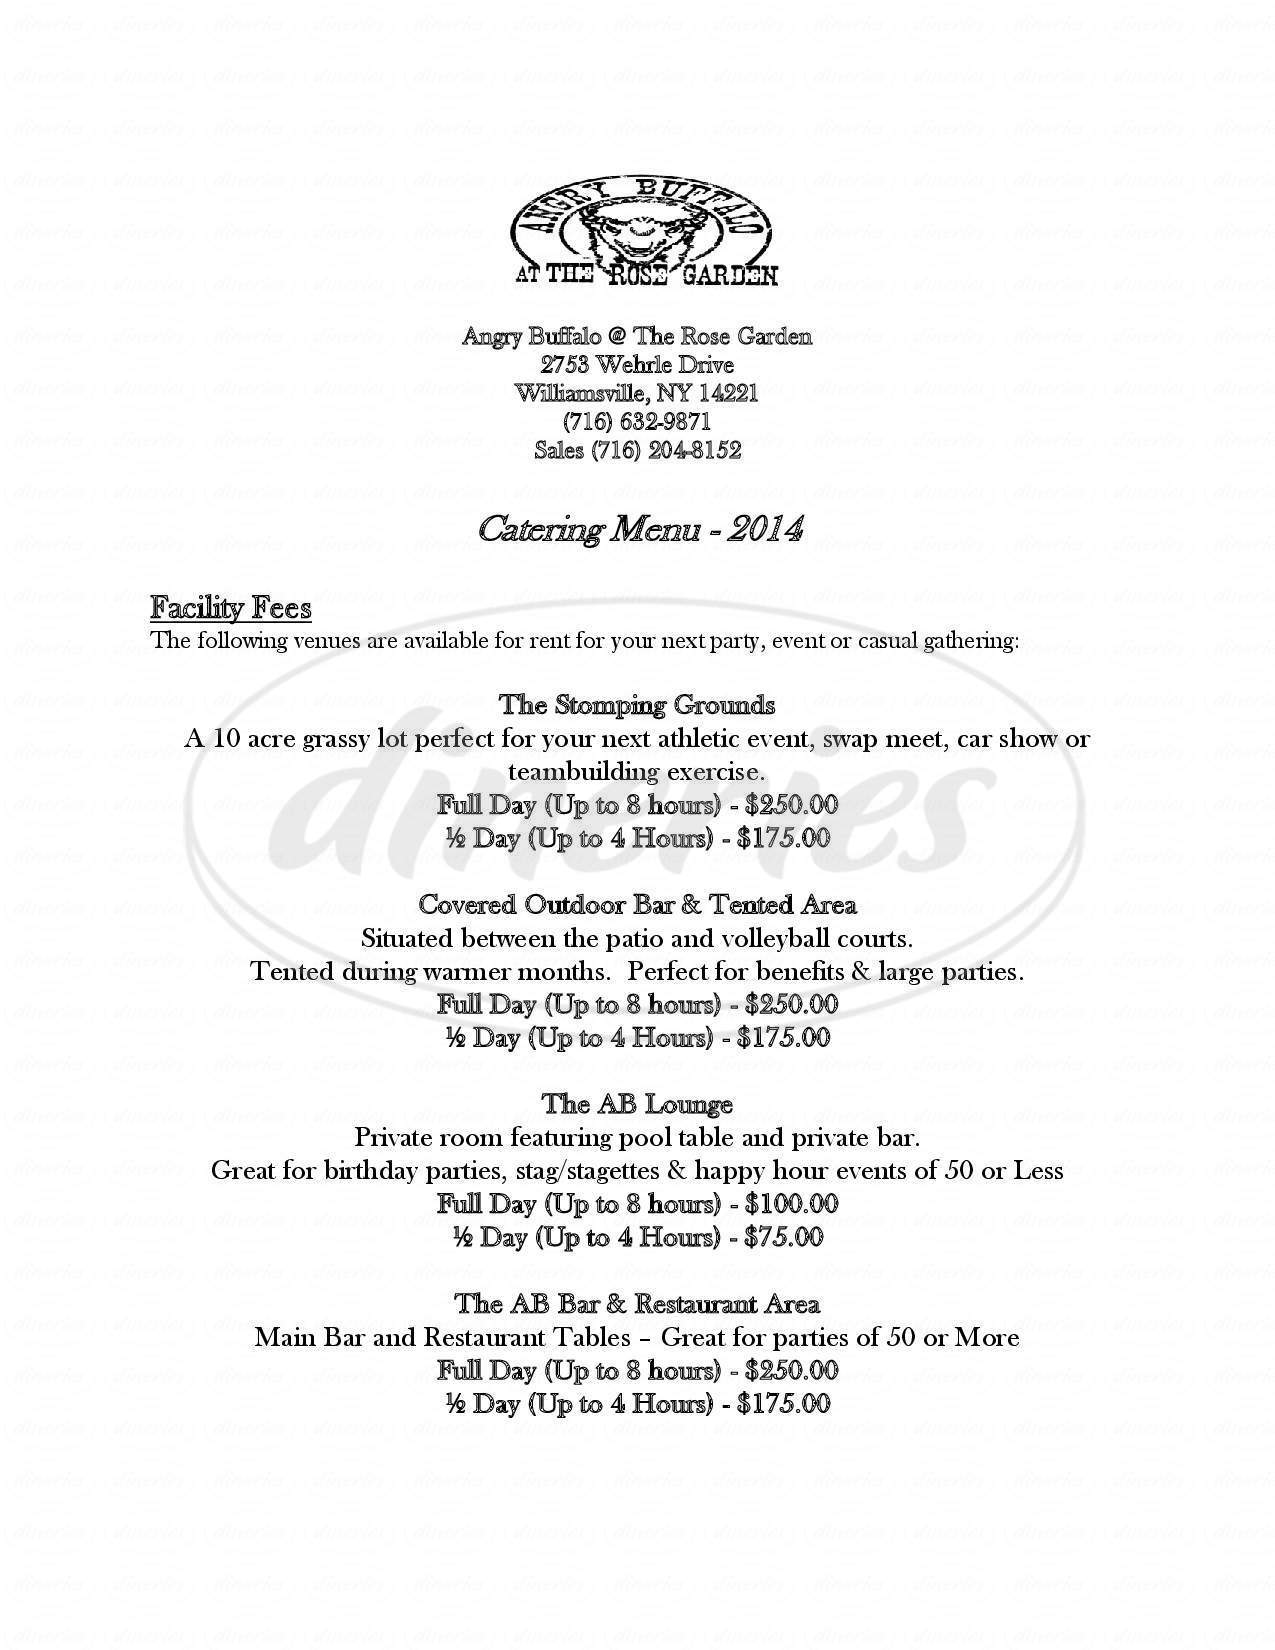 menu for Angry Buffalo at The Rose Garden